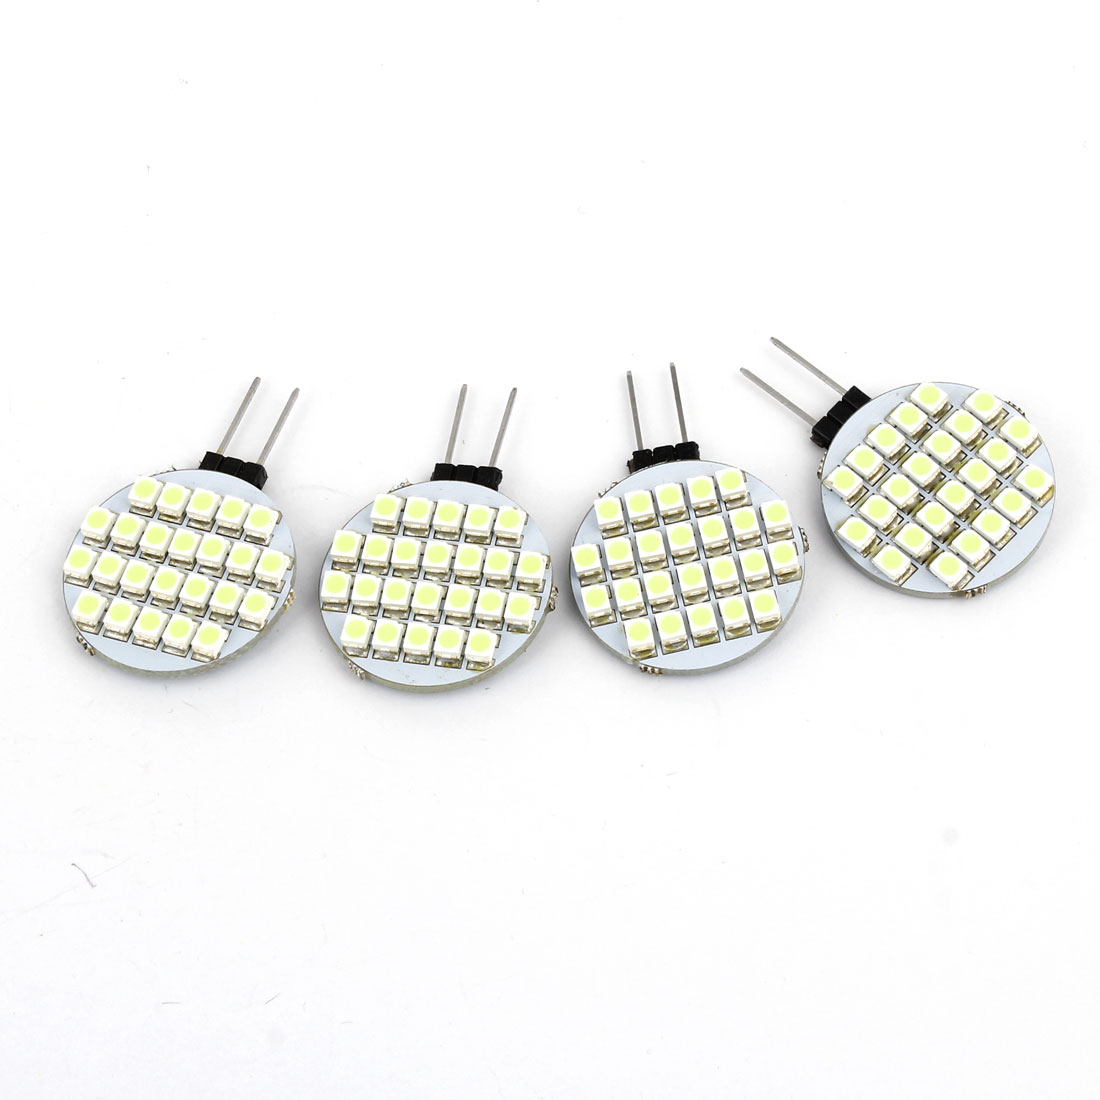 4 Pcs Auto Car Interior Decor Bin Pin White 1210 SMD 24 LED G4 Light Spotlight Signal Lamp 12V internal